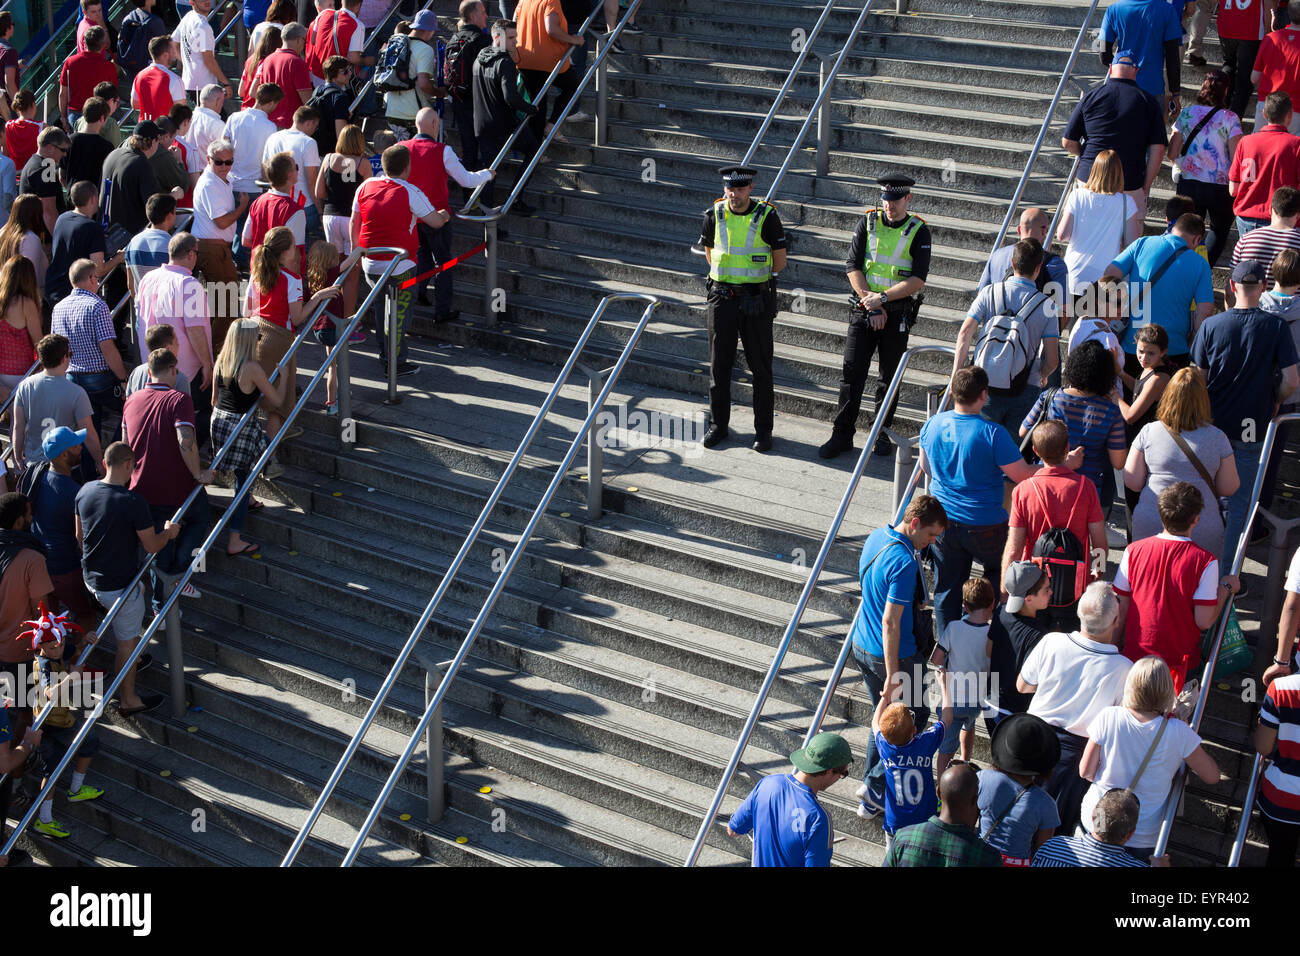 Police stand between football supporters heading to a station following a match at Wembley Stadium - Stock Image